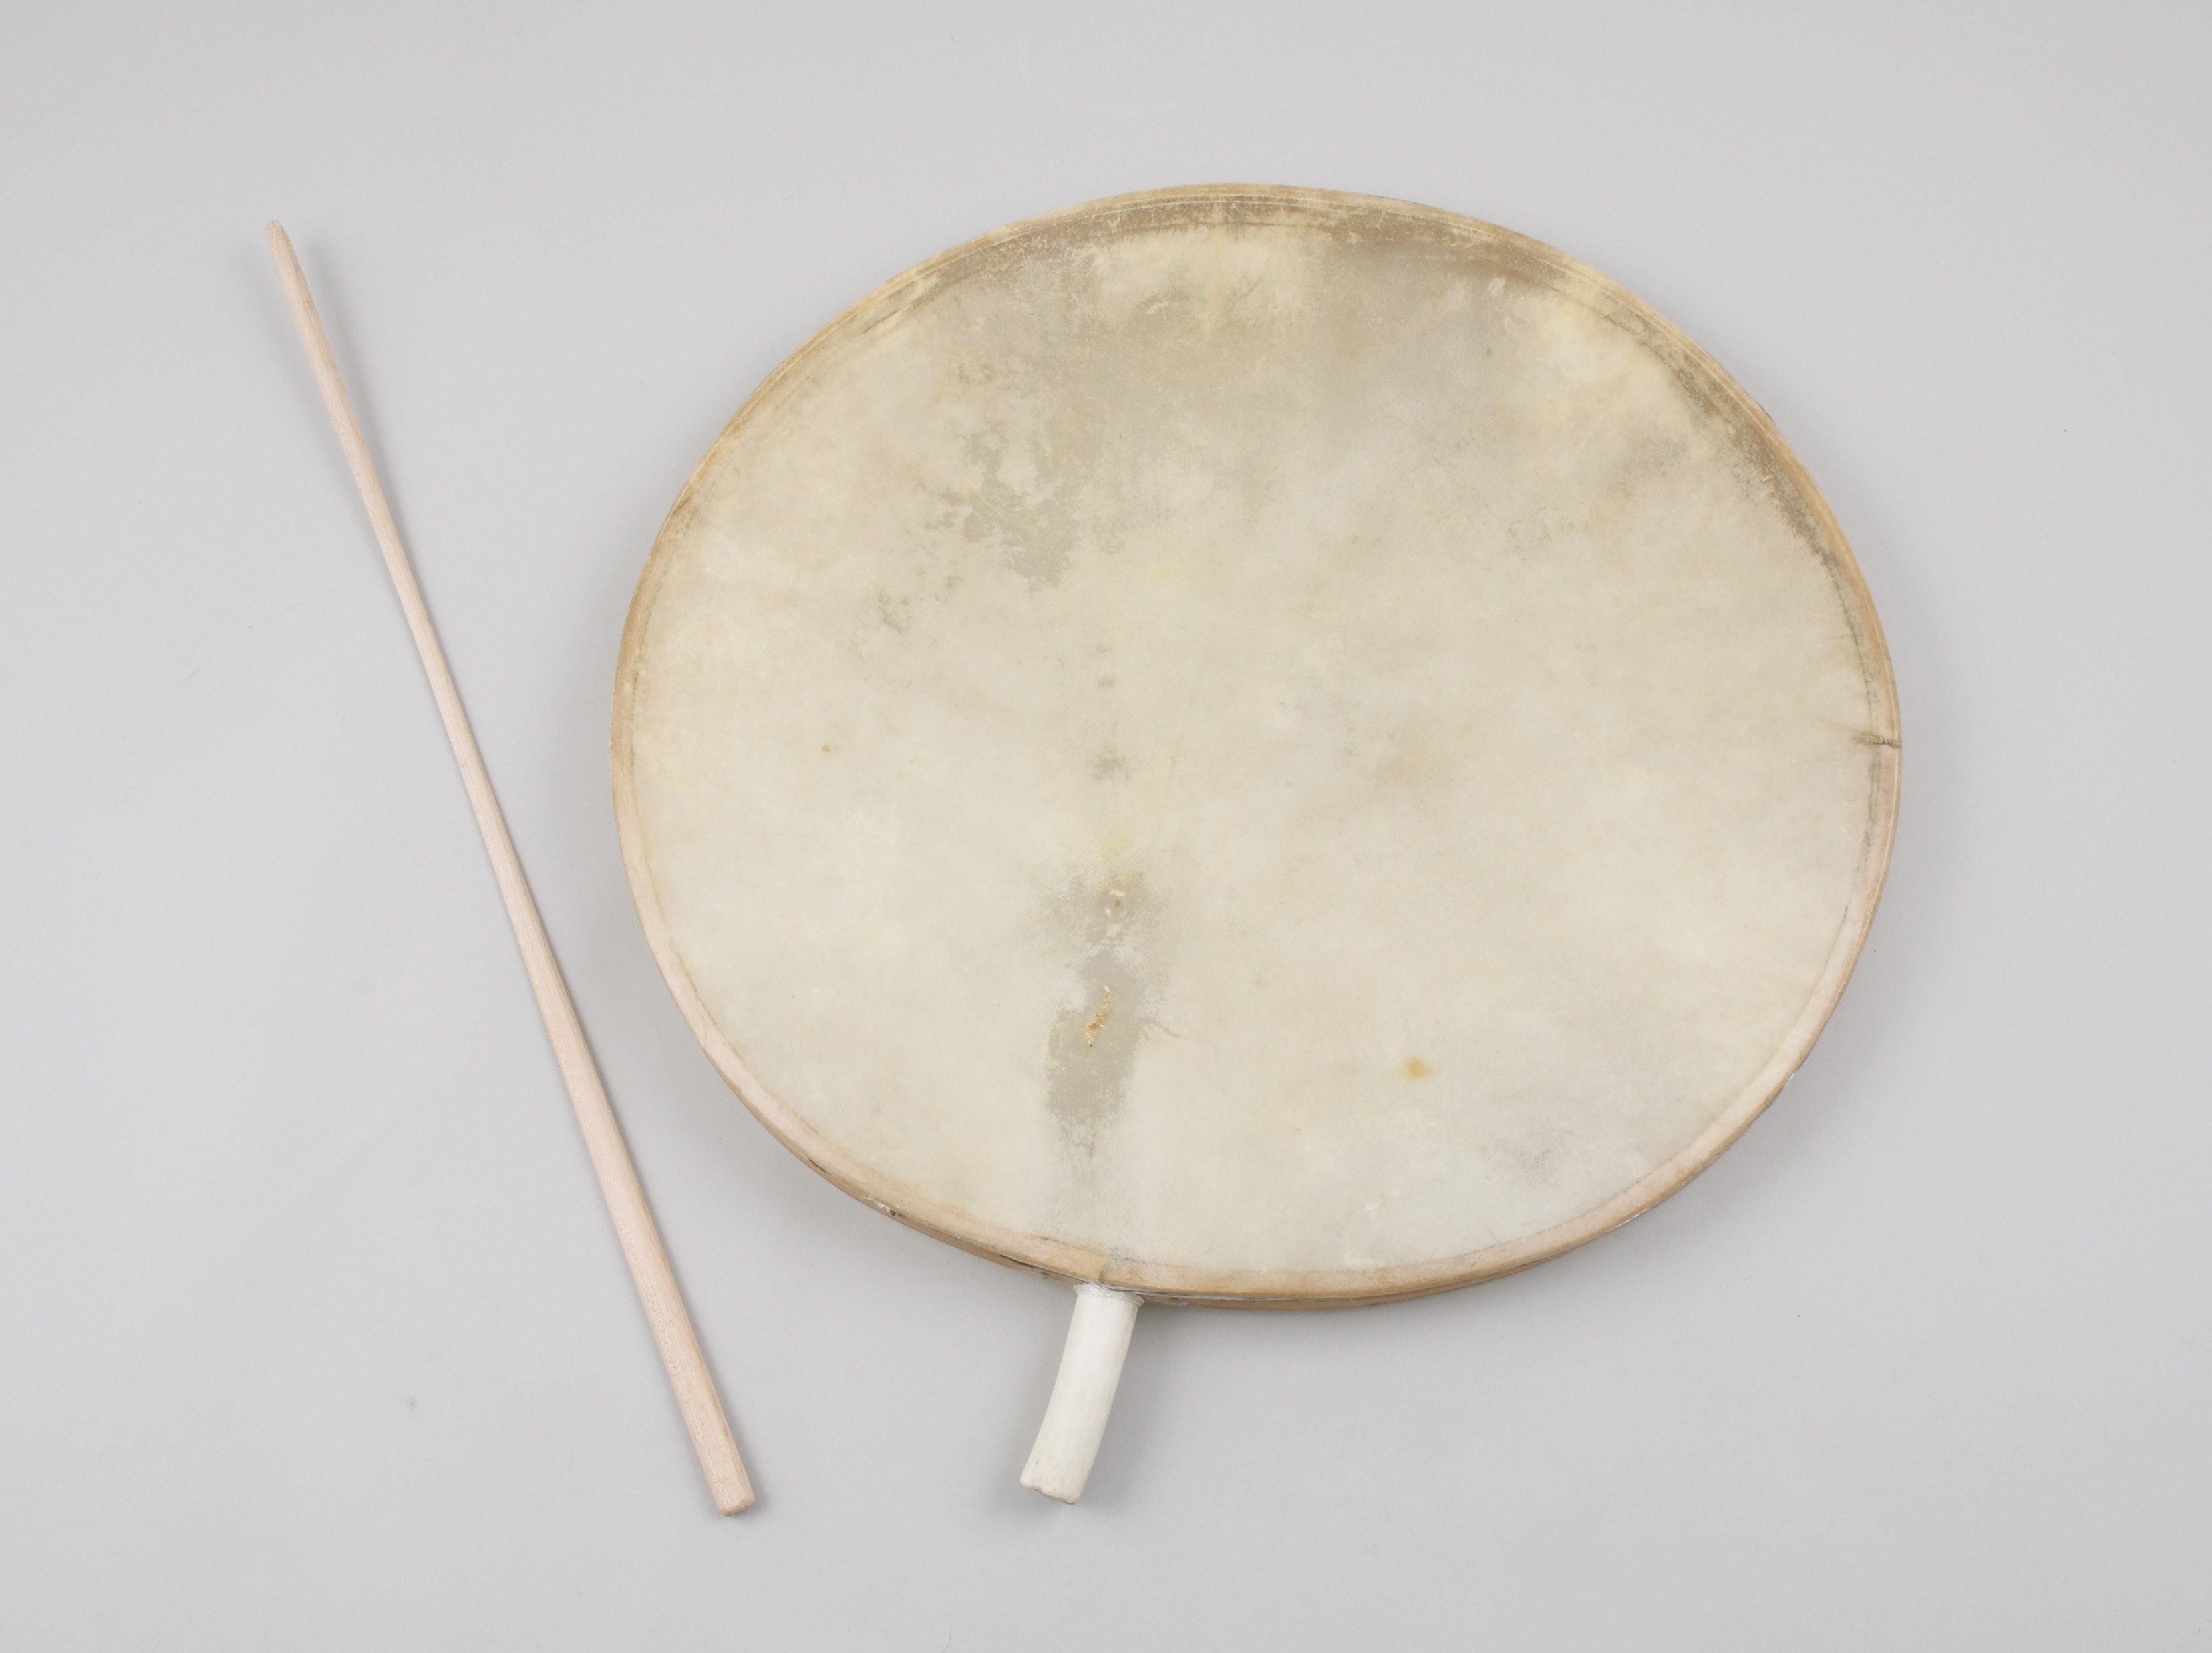 Drum and stick